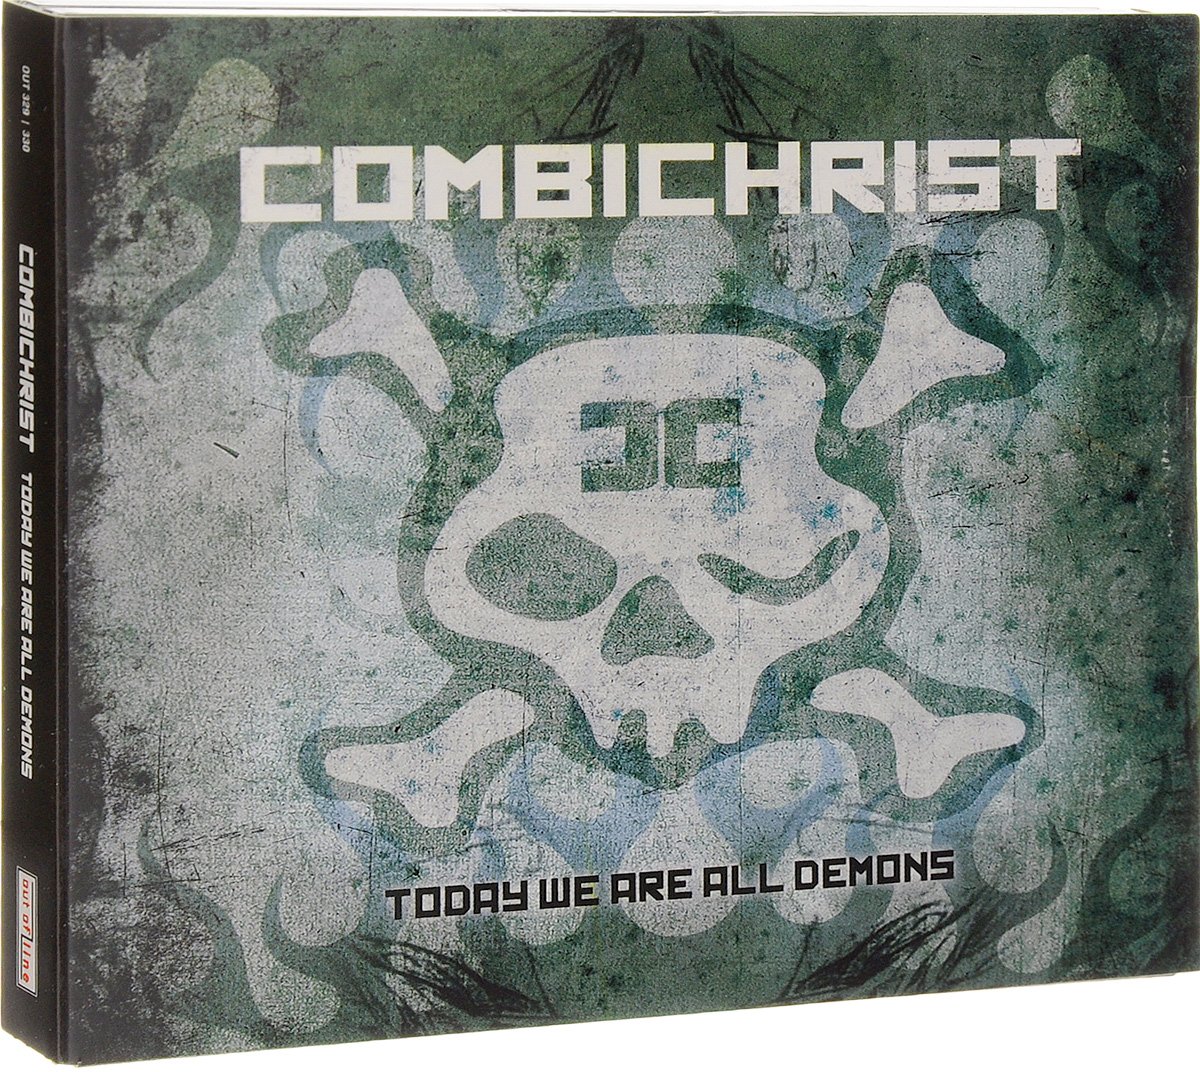 """""""Combichrist"""" Combichrist. Today We Are All Demons. Deluxe Edition (2 CD)"""